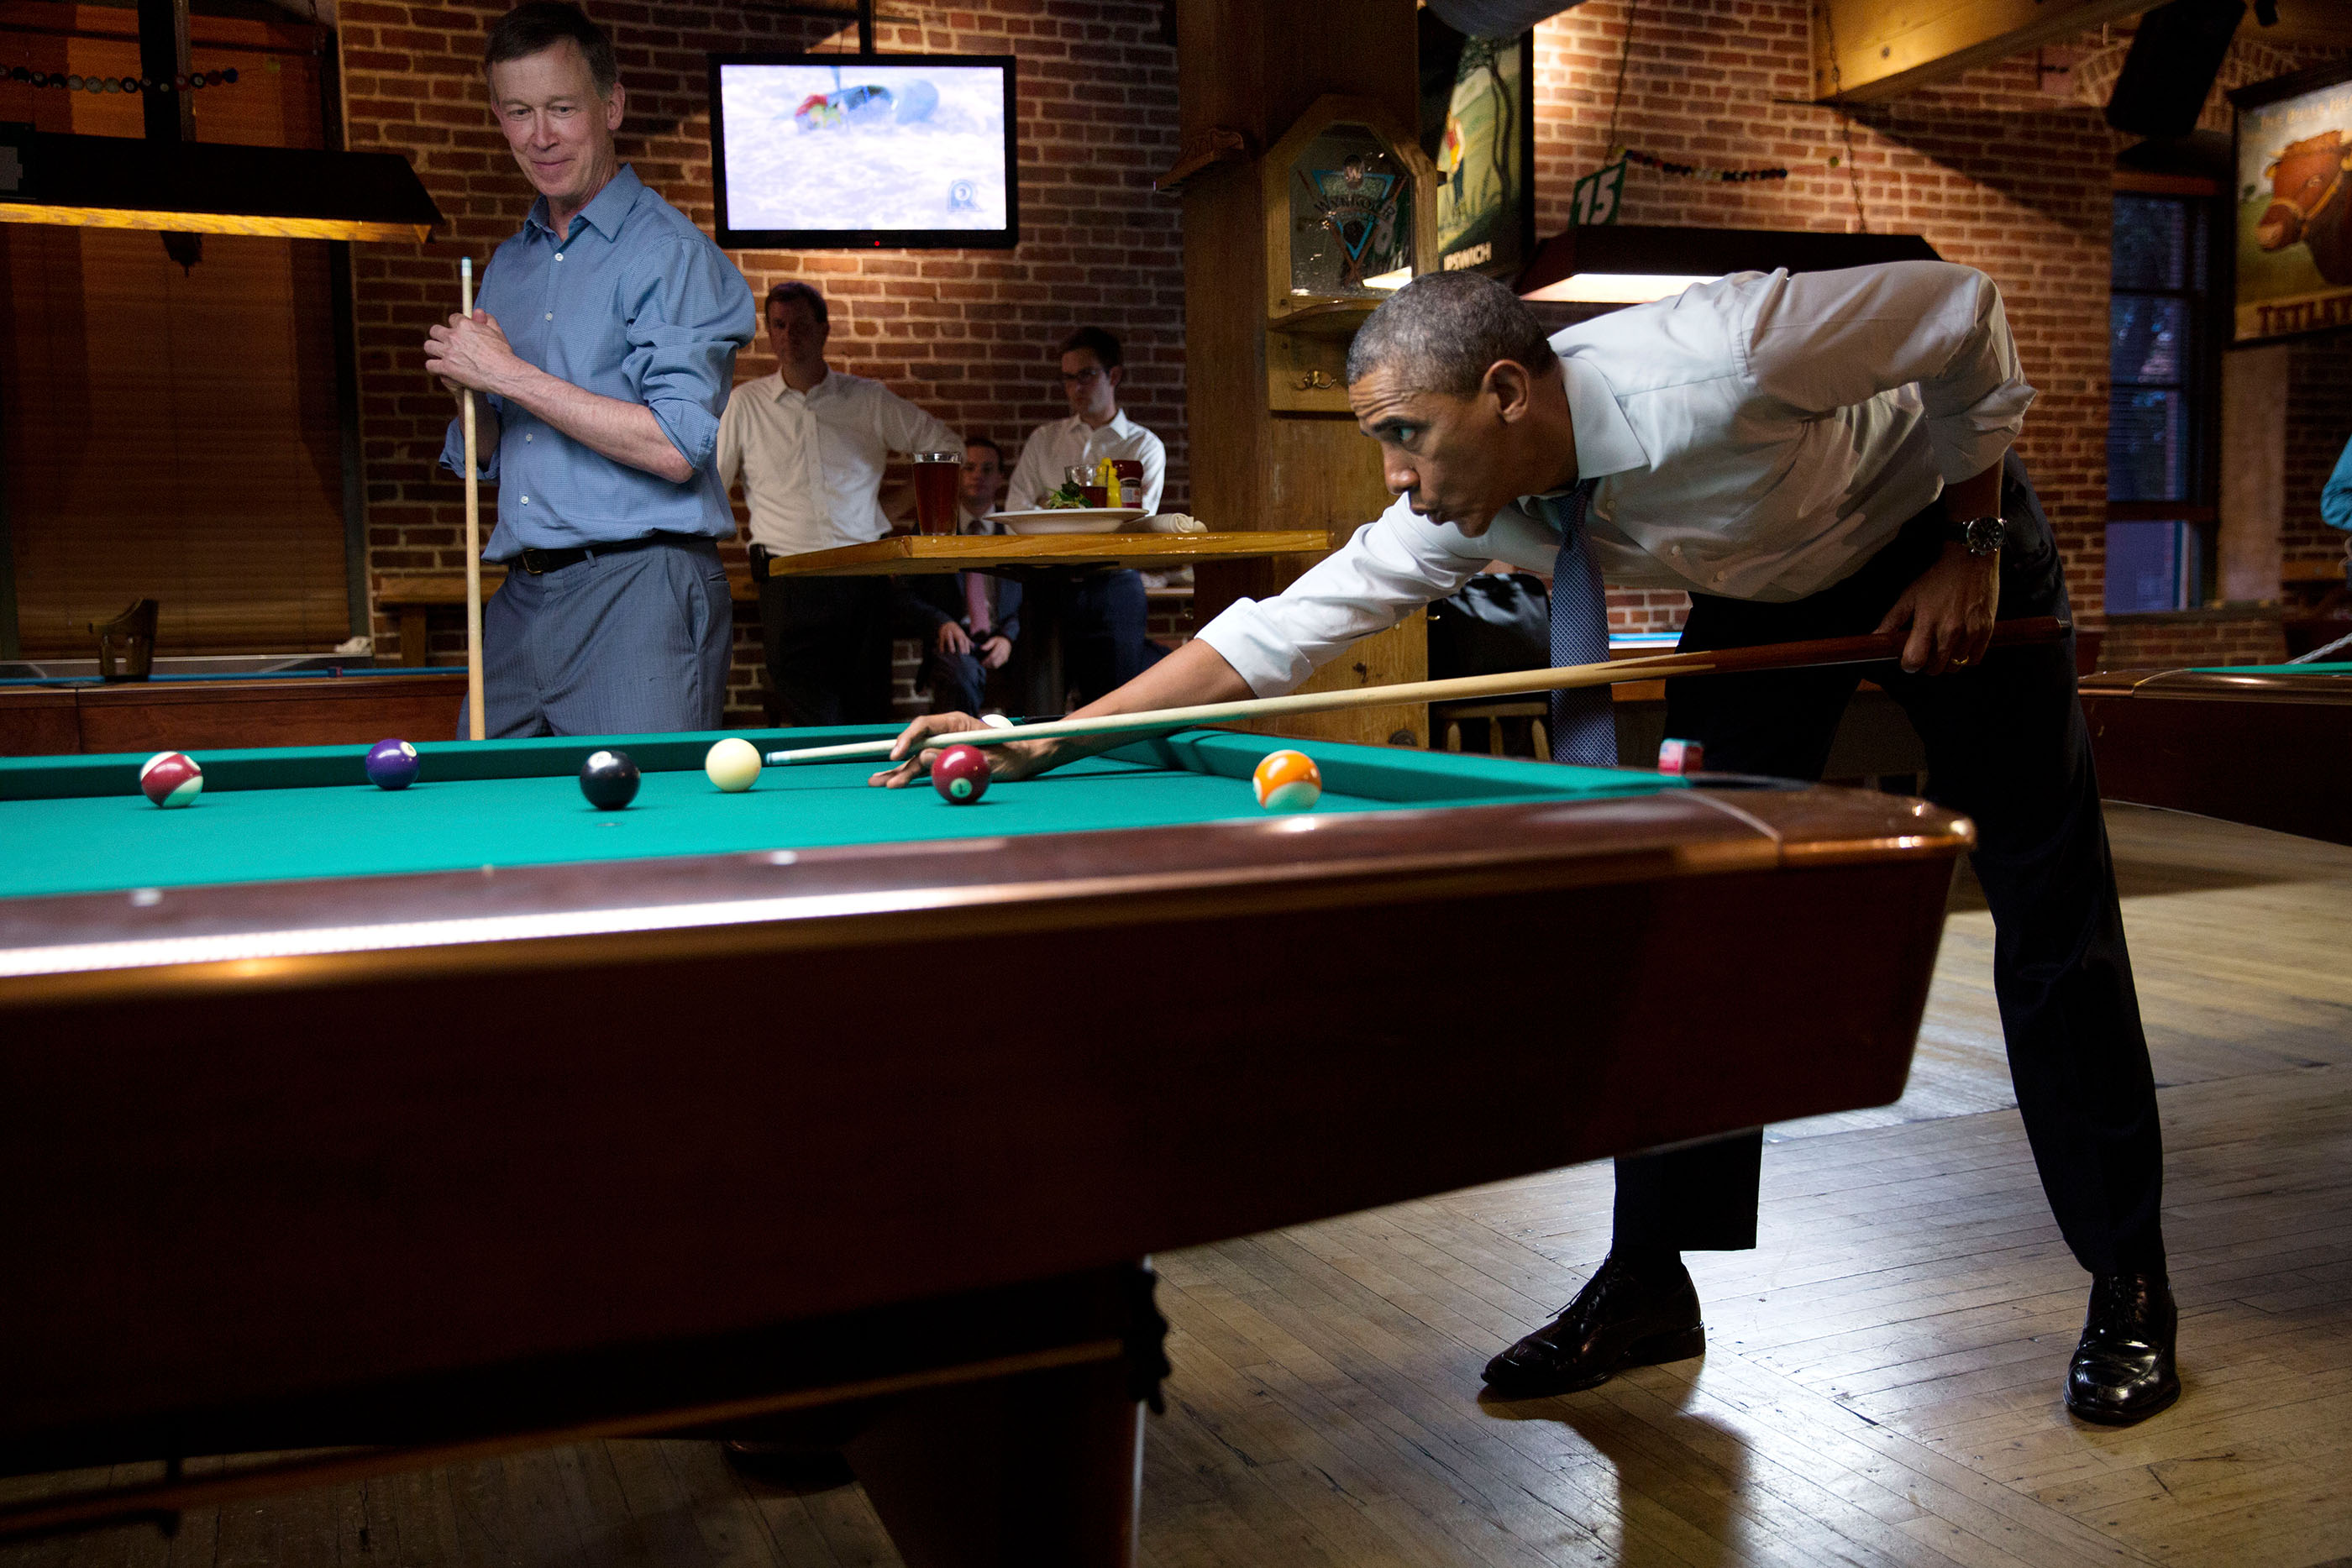 Colorado, July 8, 2014. Playing pool with Gov. John Hickenlooper in Denver. (Official White House Photo by Pete Souza)